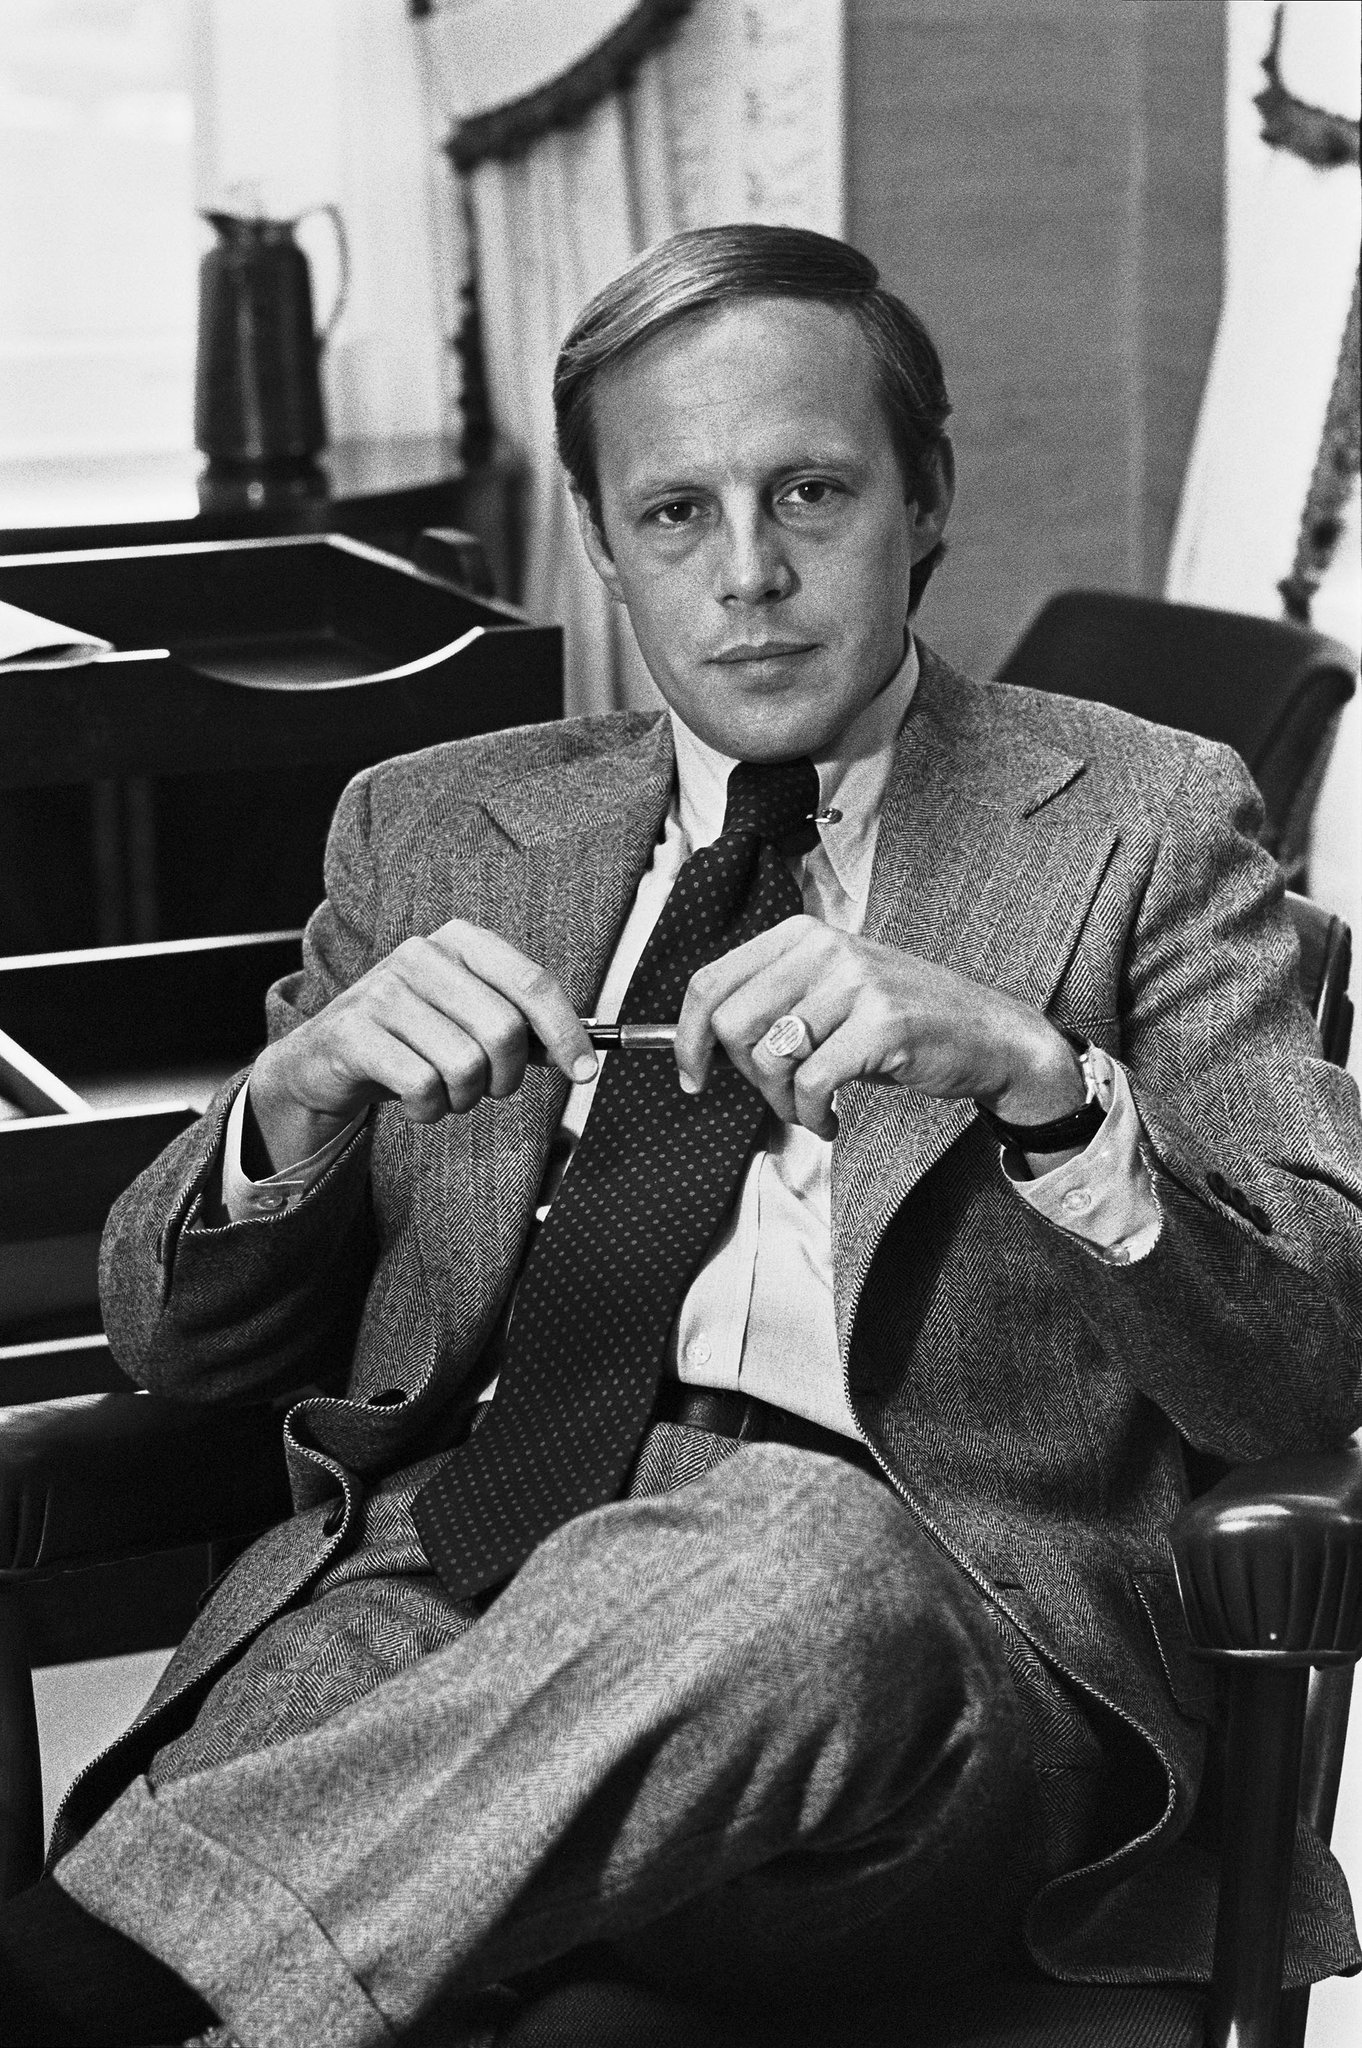 John Dean in The White House, 1973